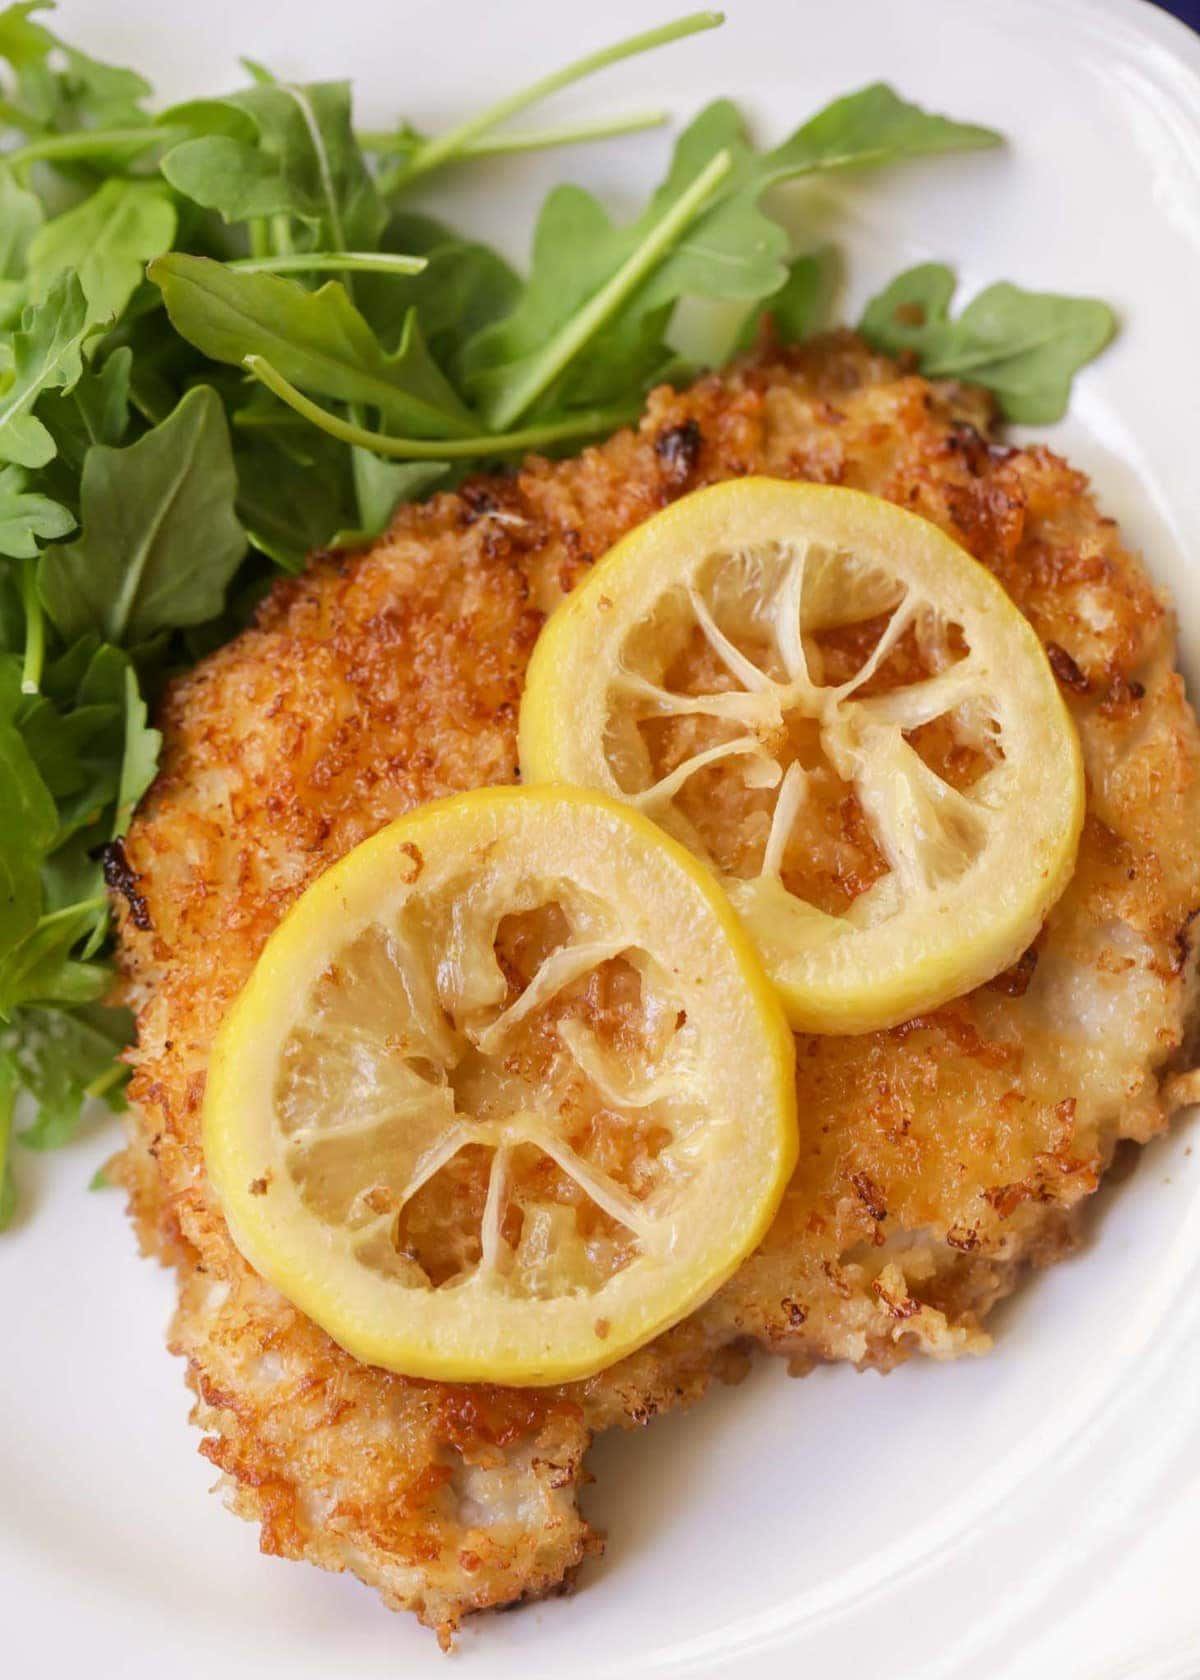 Delicious Fried Pork Chops in Lemon Butter Sauce - crispy on the outside and so delicious and tender on the inside!